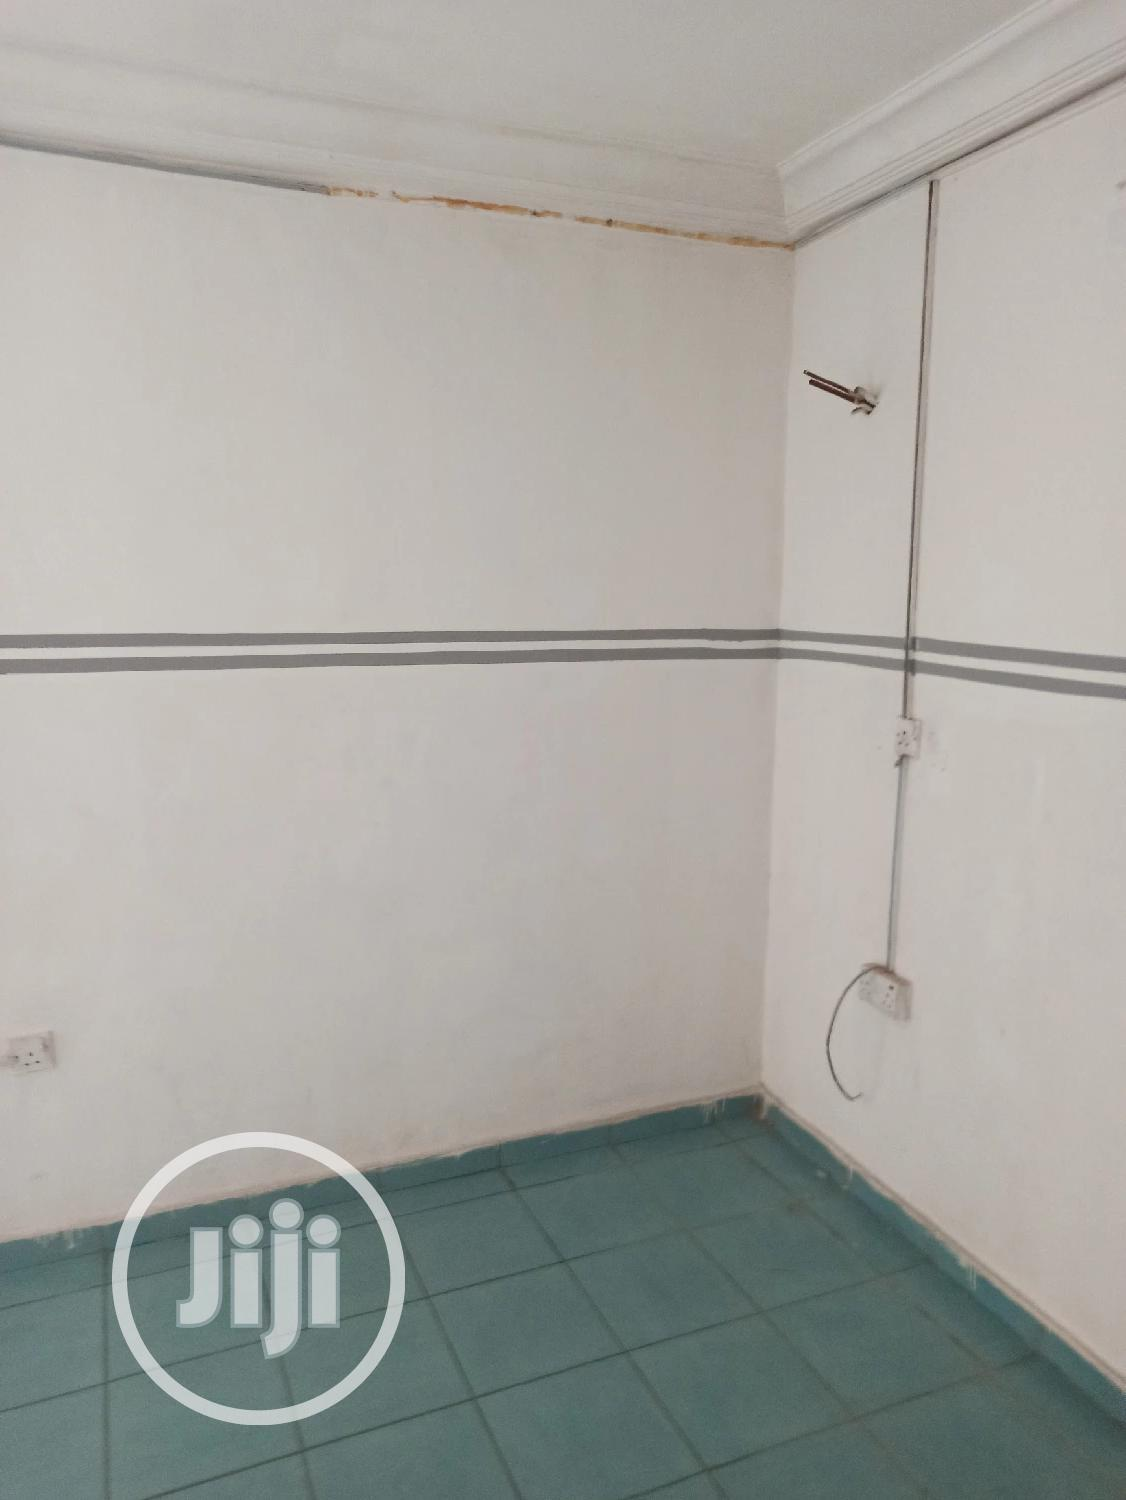 Spacious Single Room Office Space for Rent | Event centres, Venues and Workstations for sale in Wuse 2, Abuja (FCT) State, Nigeria